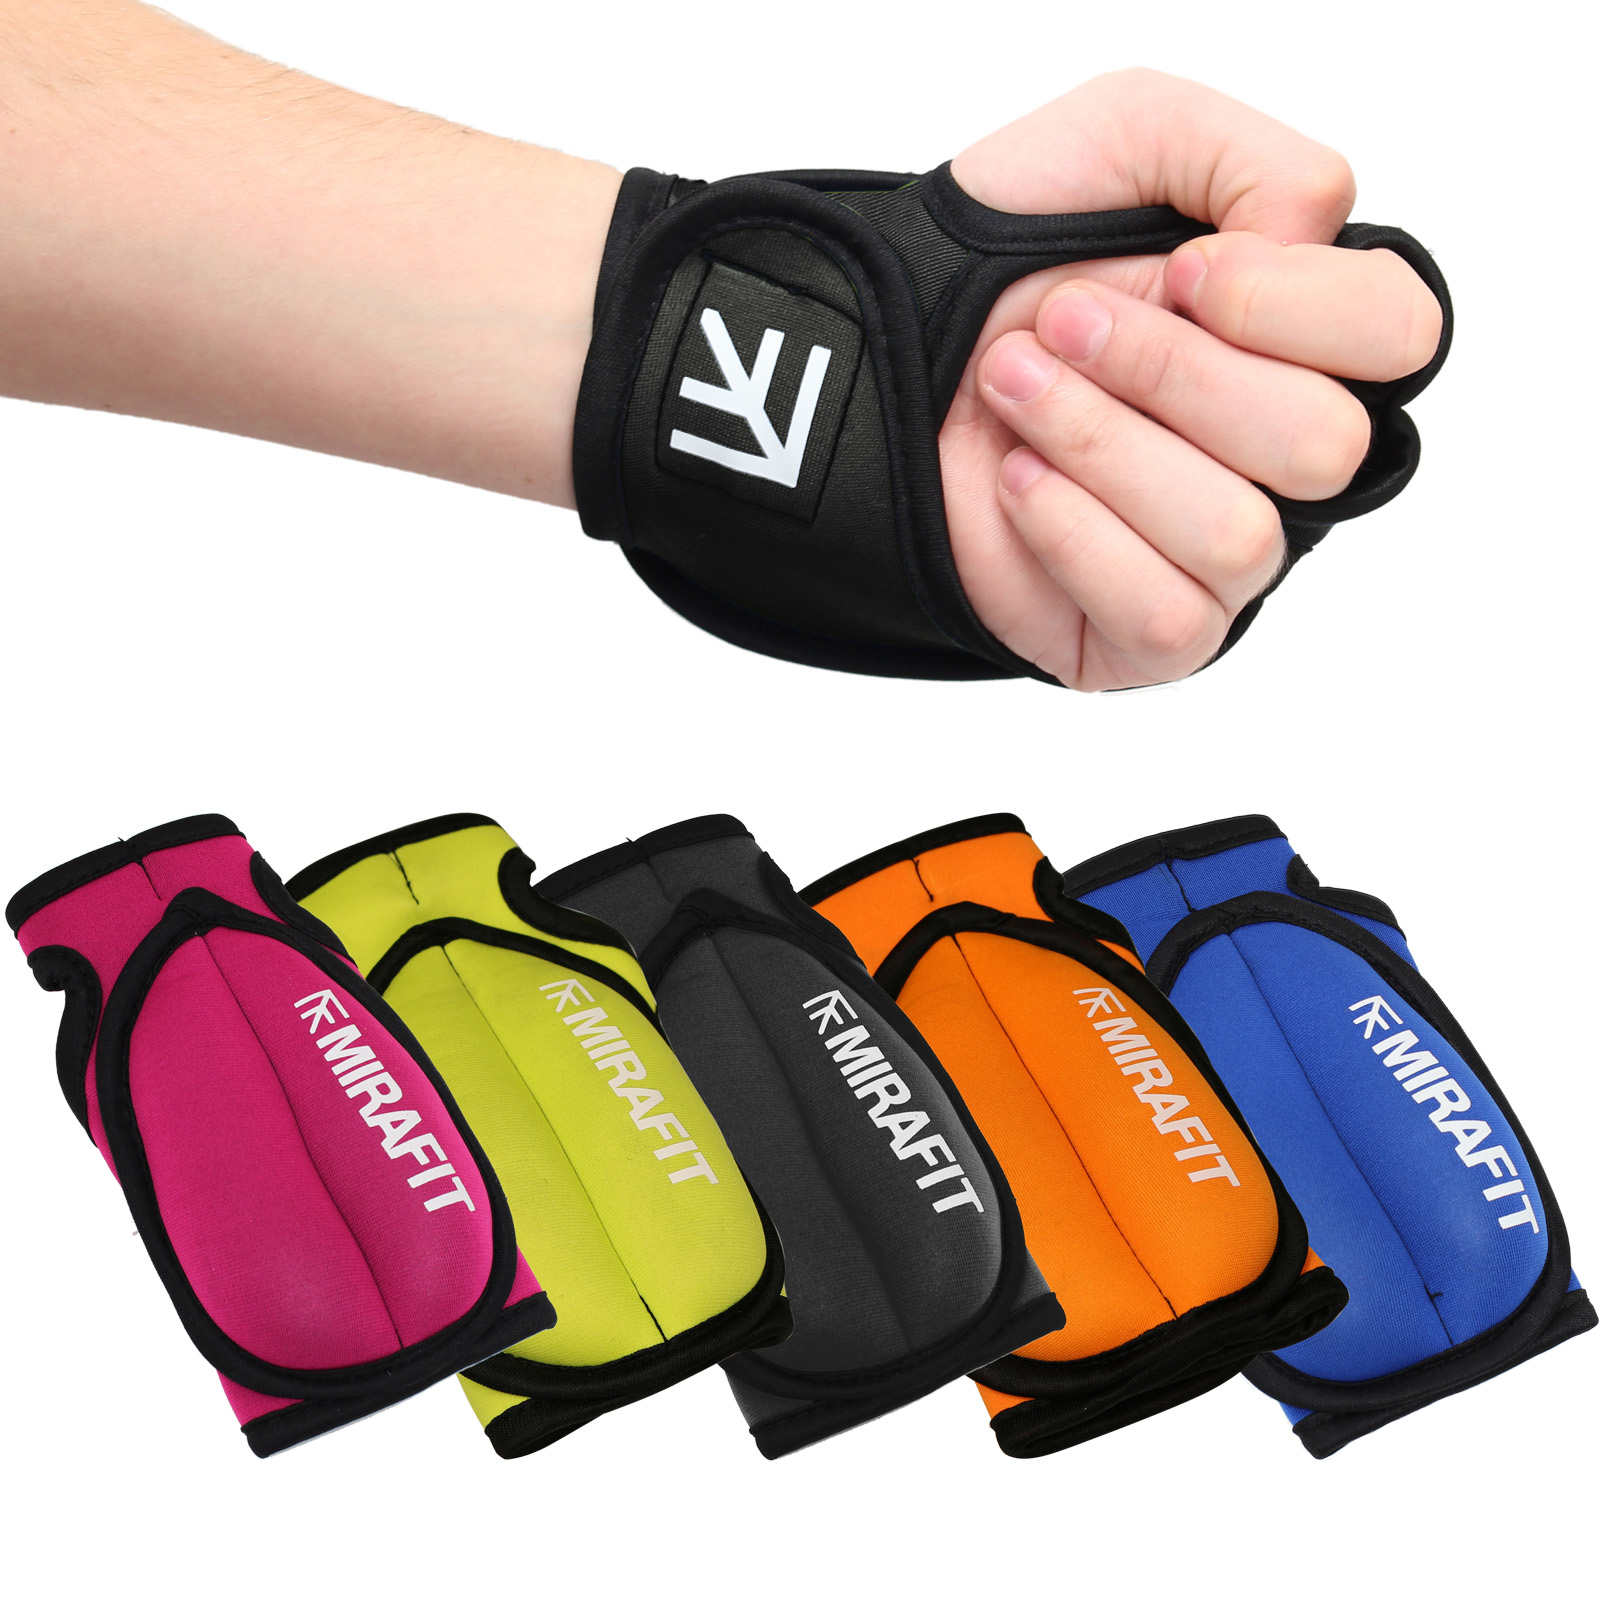 MIRAFIT Weighted Training Gloves Exercise/Shadow Boxing ...